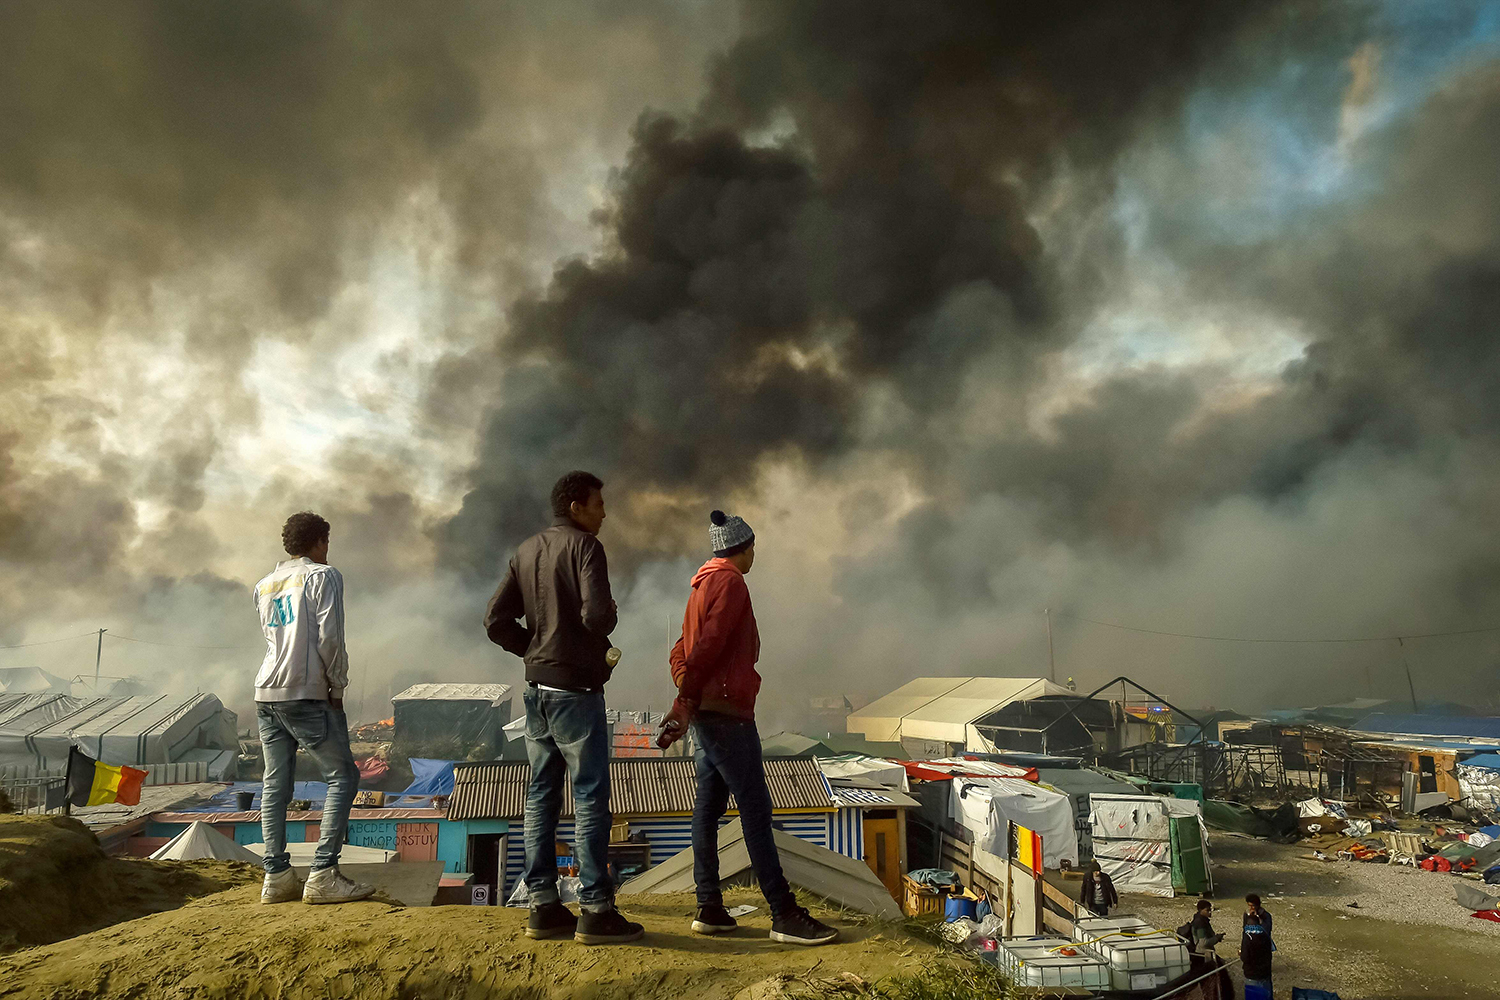 "TOPSHOT - Migrants stand on a hill overlooking the ""Jungle"" migrant camp in Calais, northern France, as smoke rises on October 26, 2016 during a massive operation to clear the squalid settlement where 6,000-8,000 people have been living in dire conditions. Fresh fires broke out on October 26 in the ""Jungle"" migrant camp on the second day of operations to dismantle the squalid settlement in northern France. Smoke billowed over the sprawling camp near Calais for a second day amid fears that abandoned gas cylinders could explode. / AFP PHOTO / PHILIPPE HUGUEN / TT / kod 444"